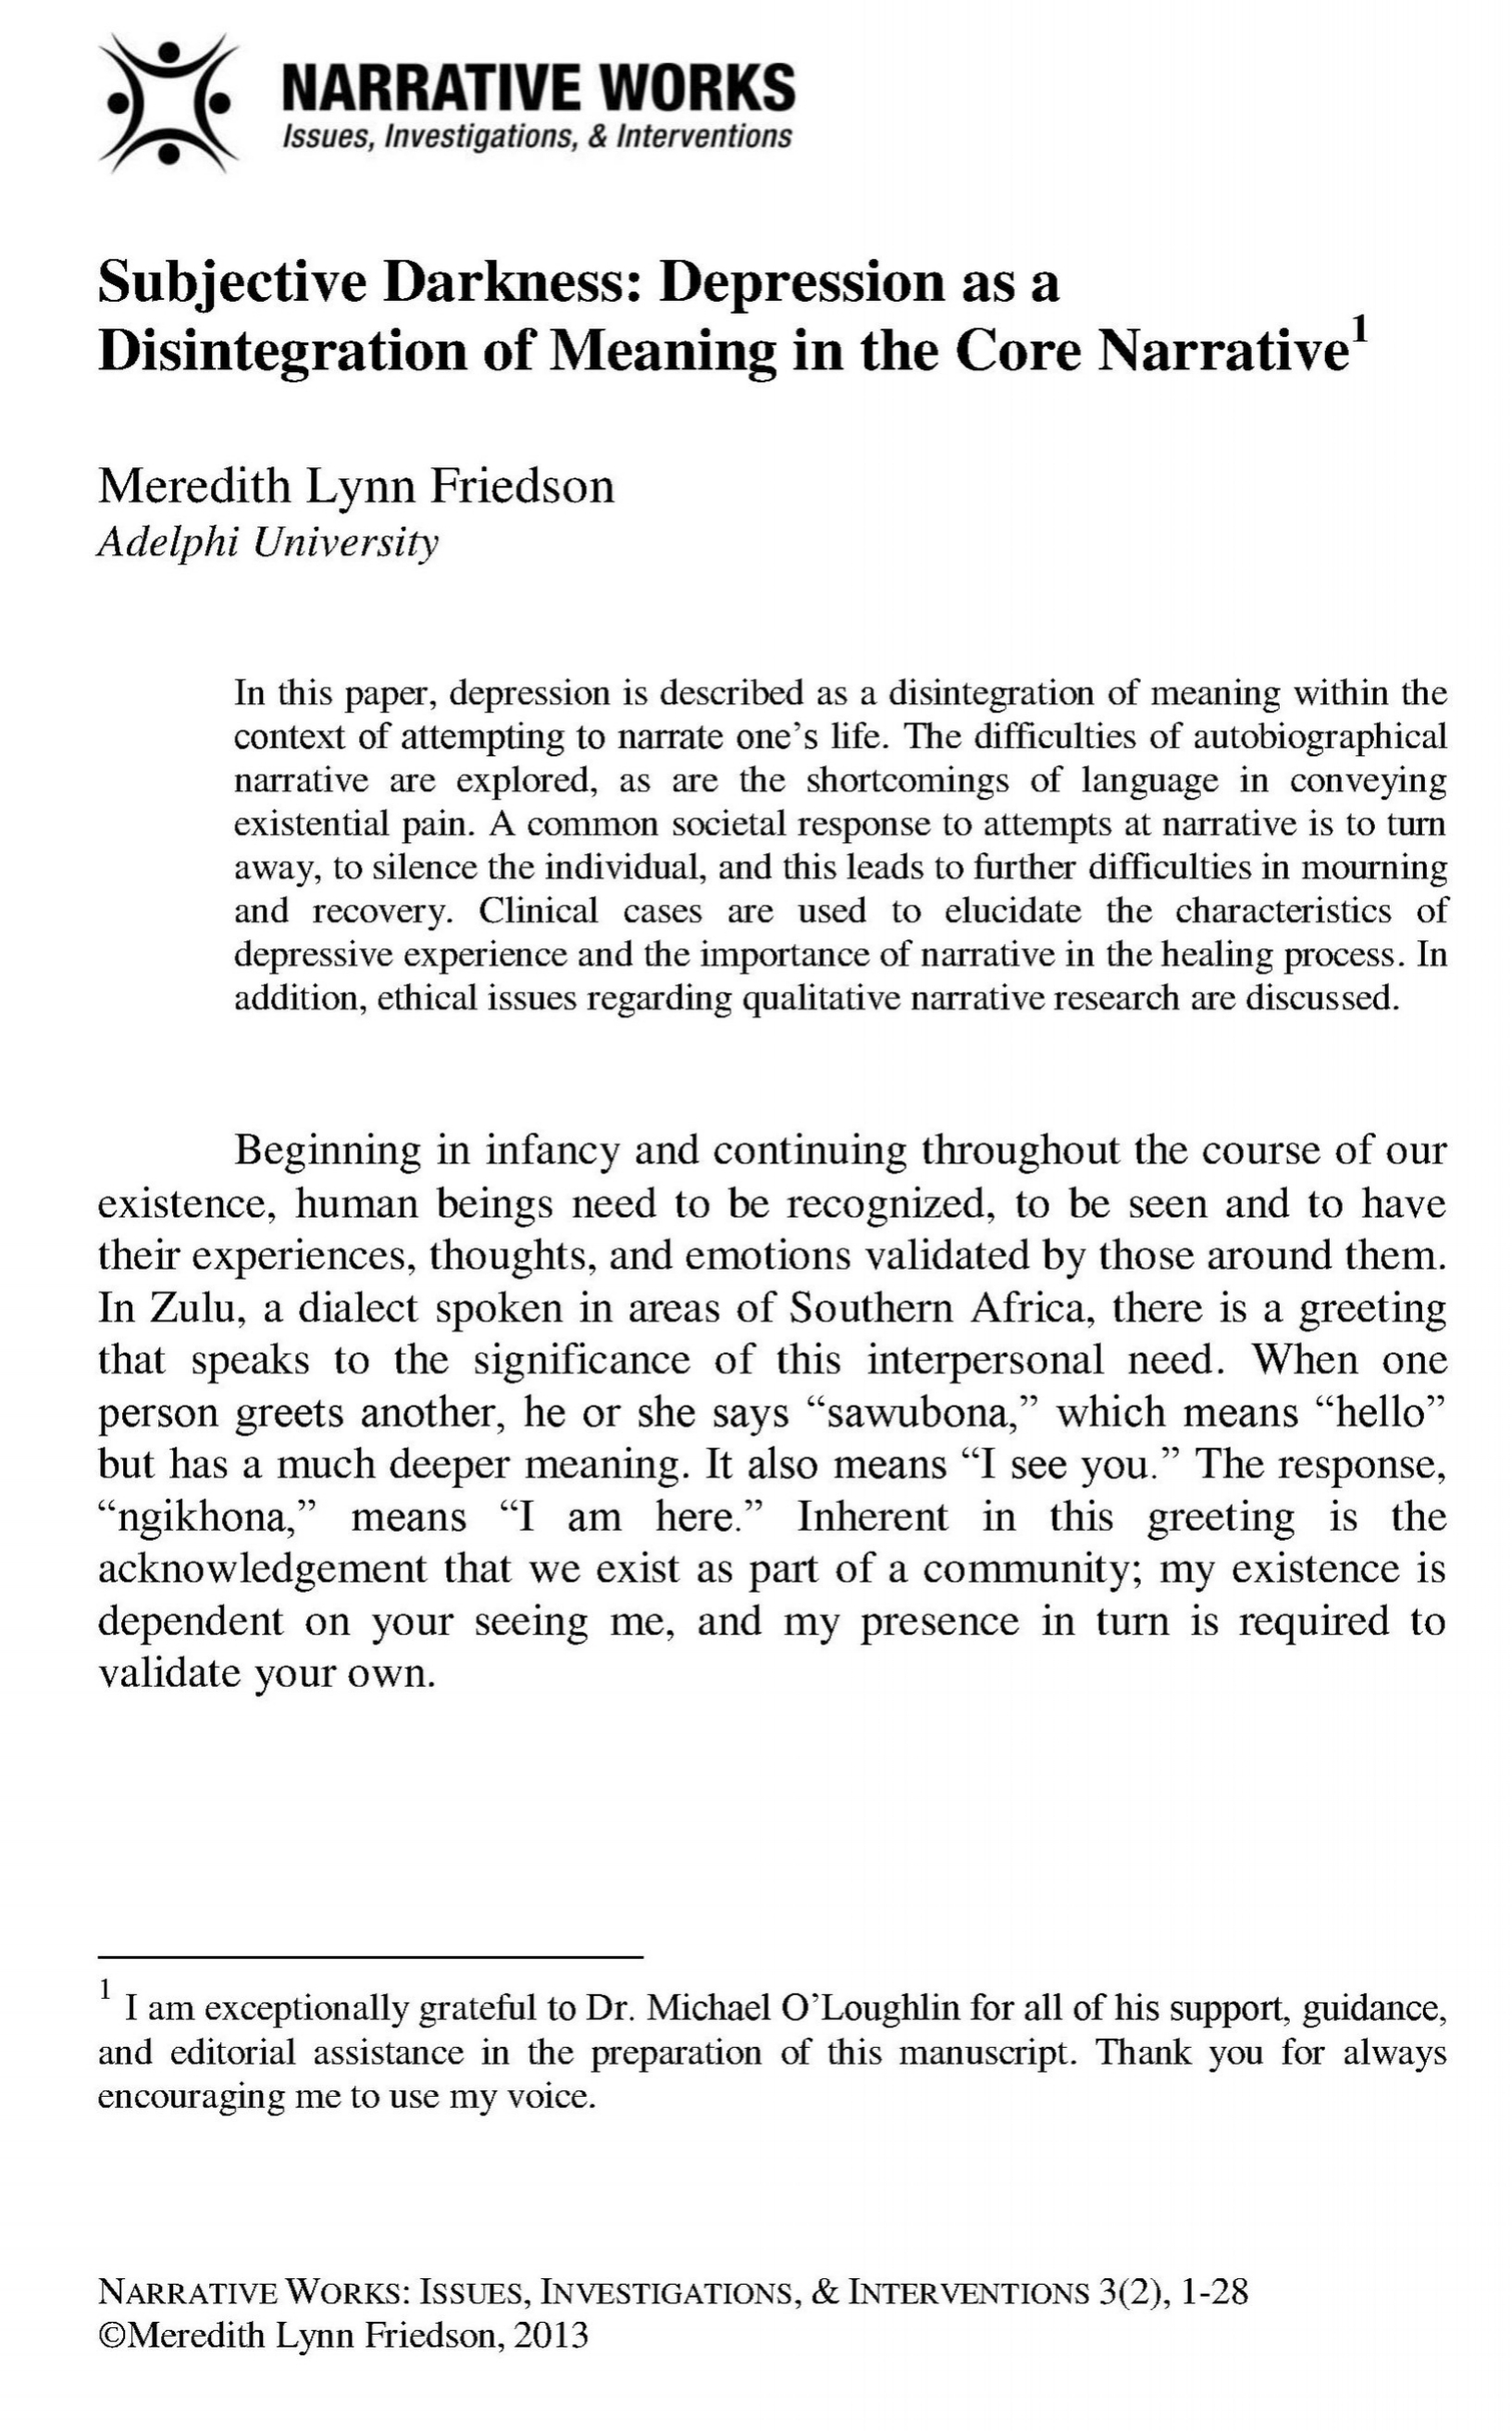 Subjective Darkness - Depression as a Disintegration of Meaning in the Core Narrative_Friedson, M._2013_3-17-14_COVER.jpg